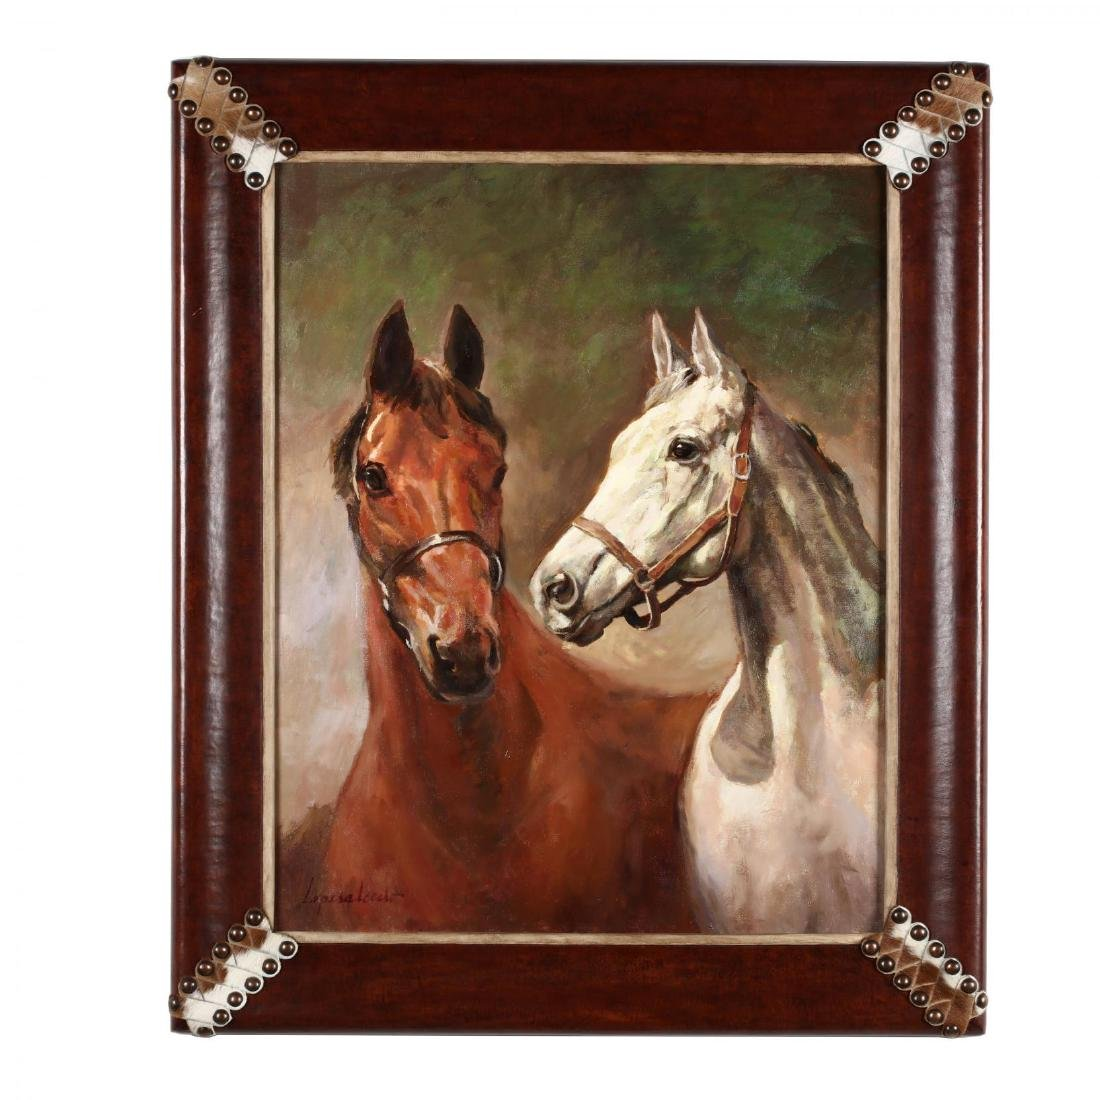 A Contemporary Painting of Two Horses